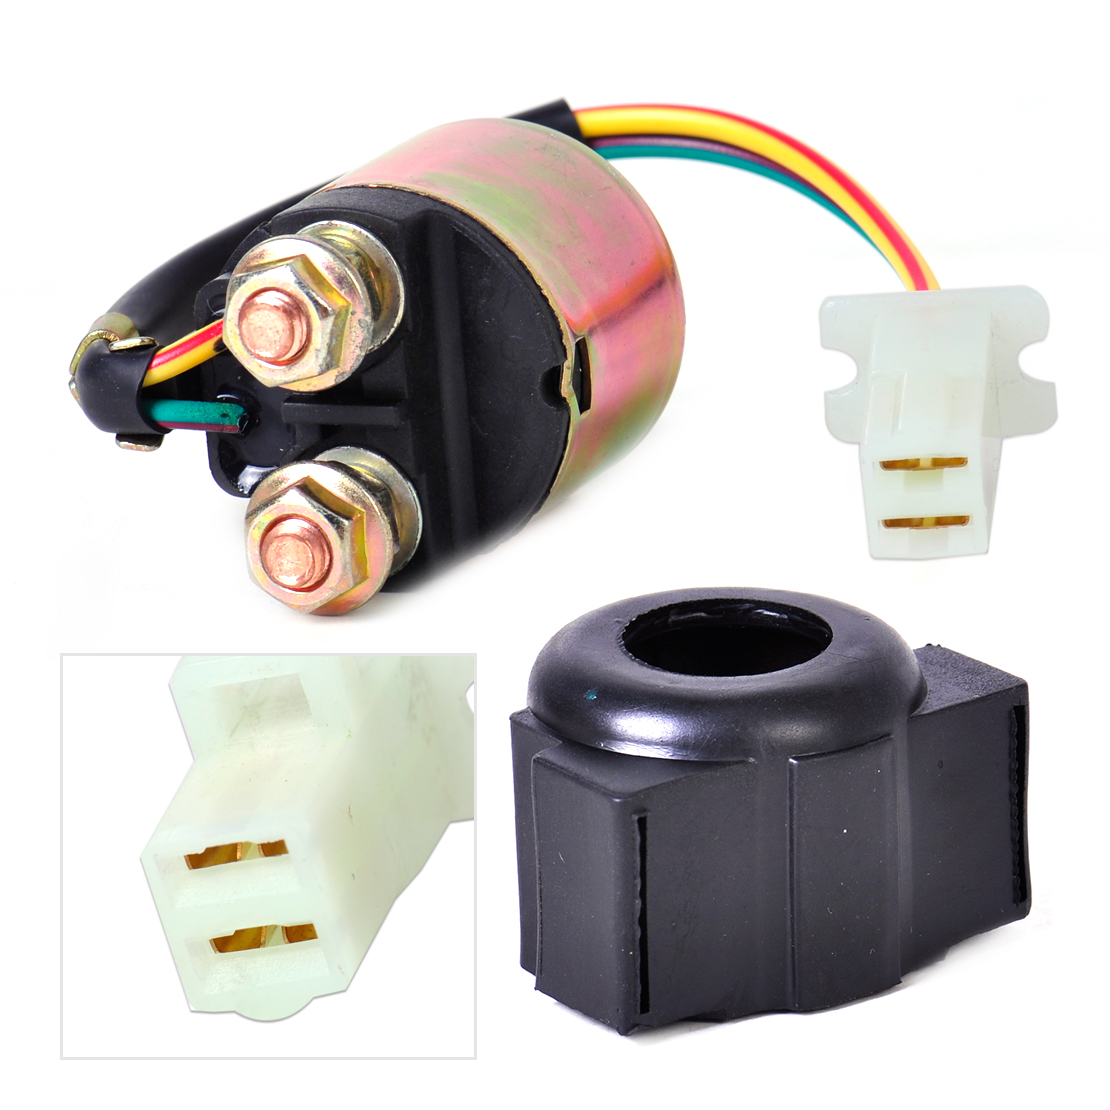 Citall 1pc 2 Wire Plug Connection Starter Relay Solenoid 3ay 81940 Ford Wiring Pits 00 4kd Fit For Yamaha Yfm350 Honda Suzuki In Motorbike Ingition From